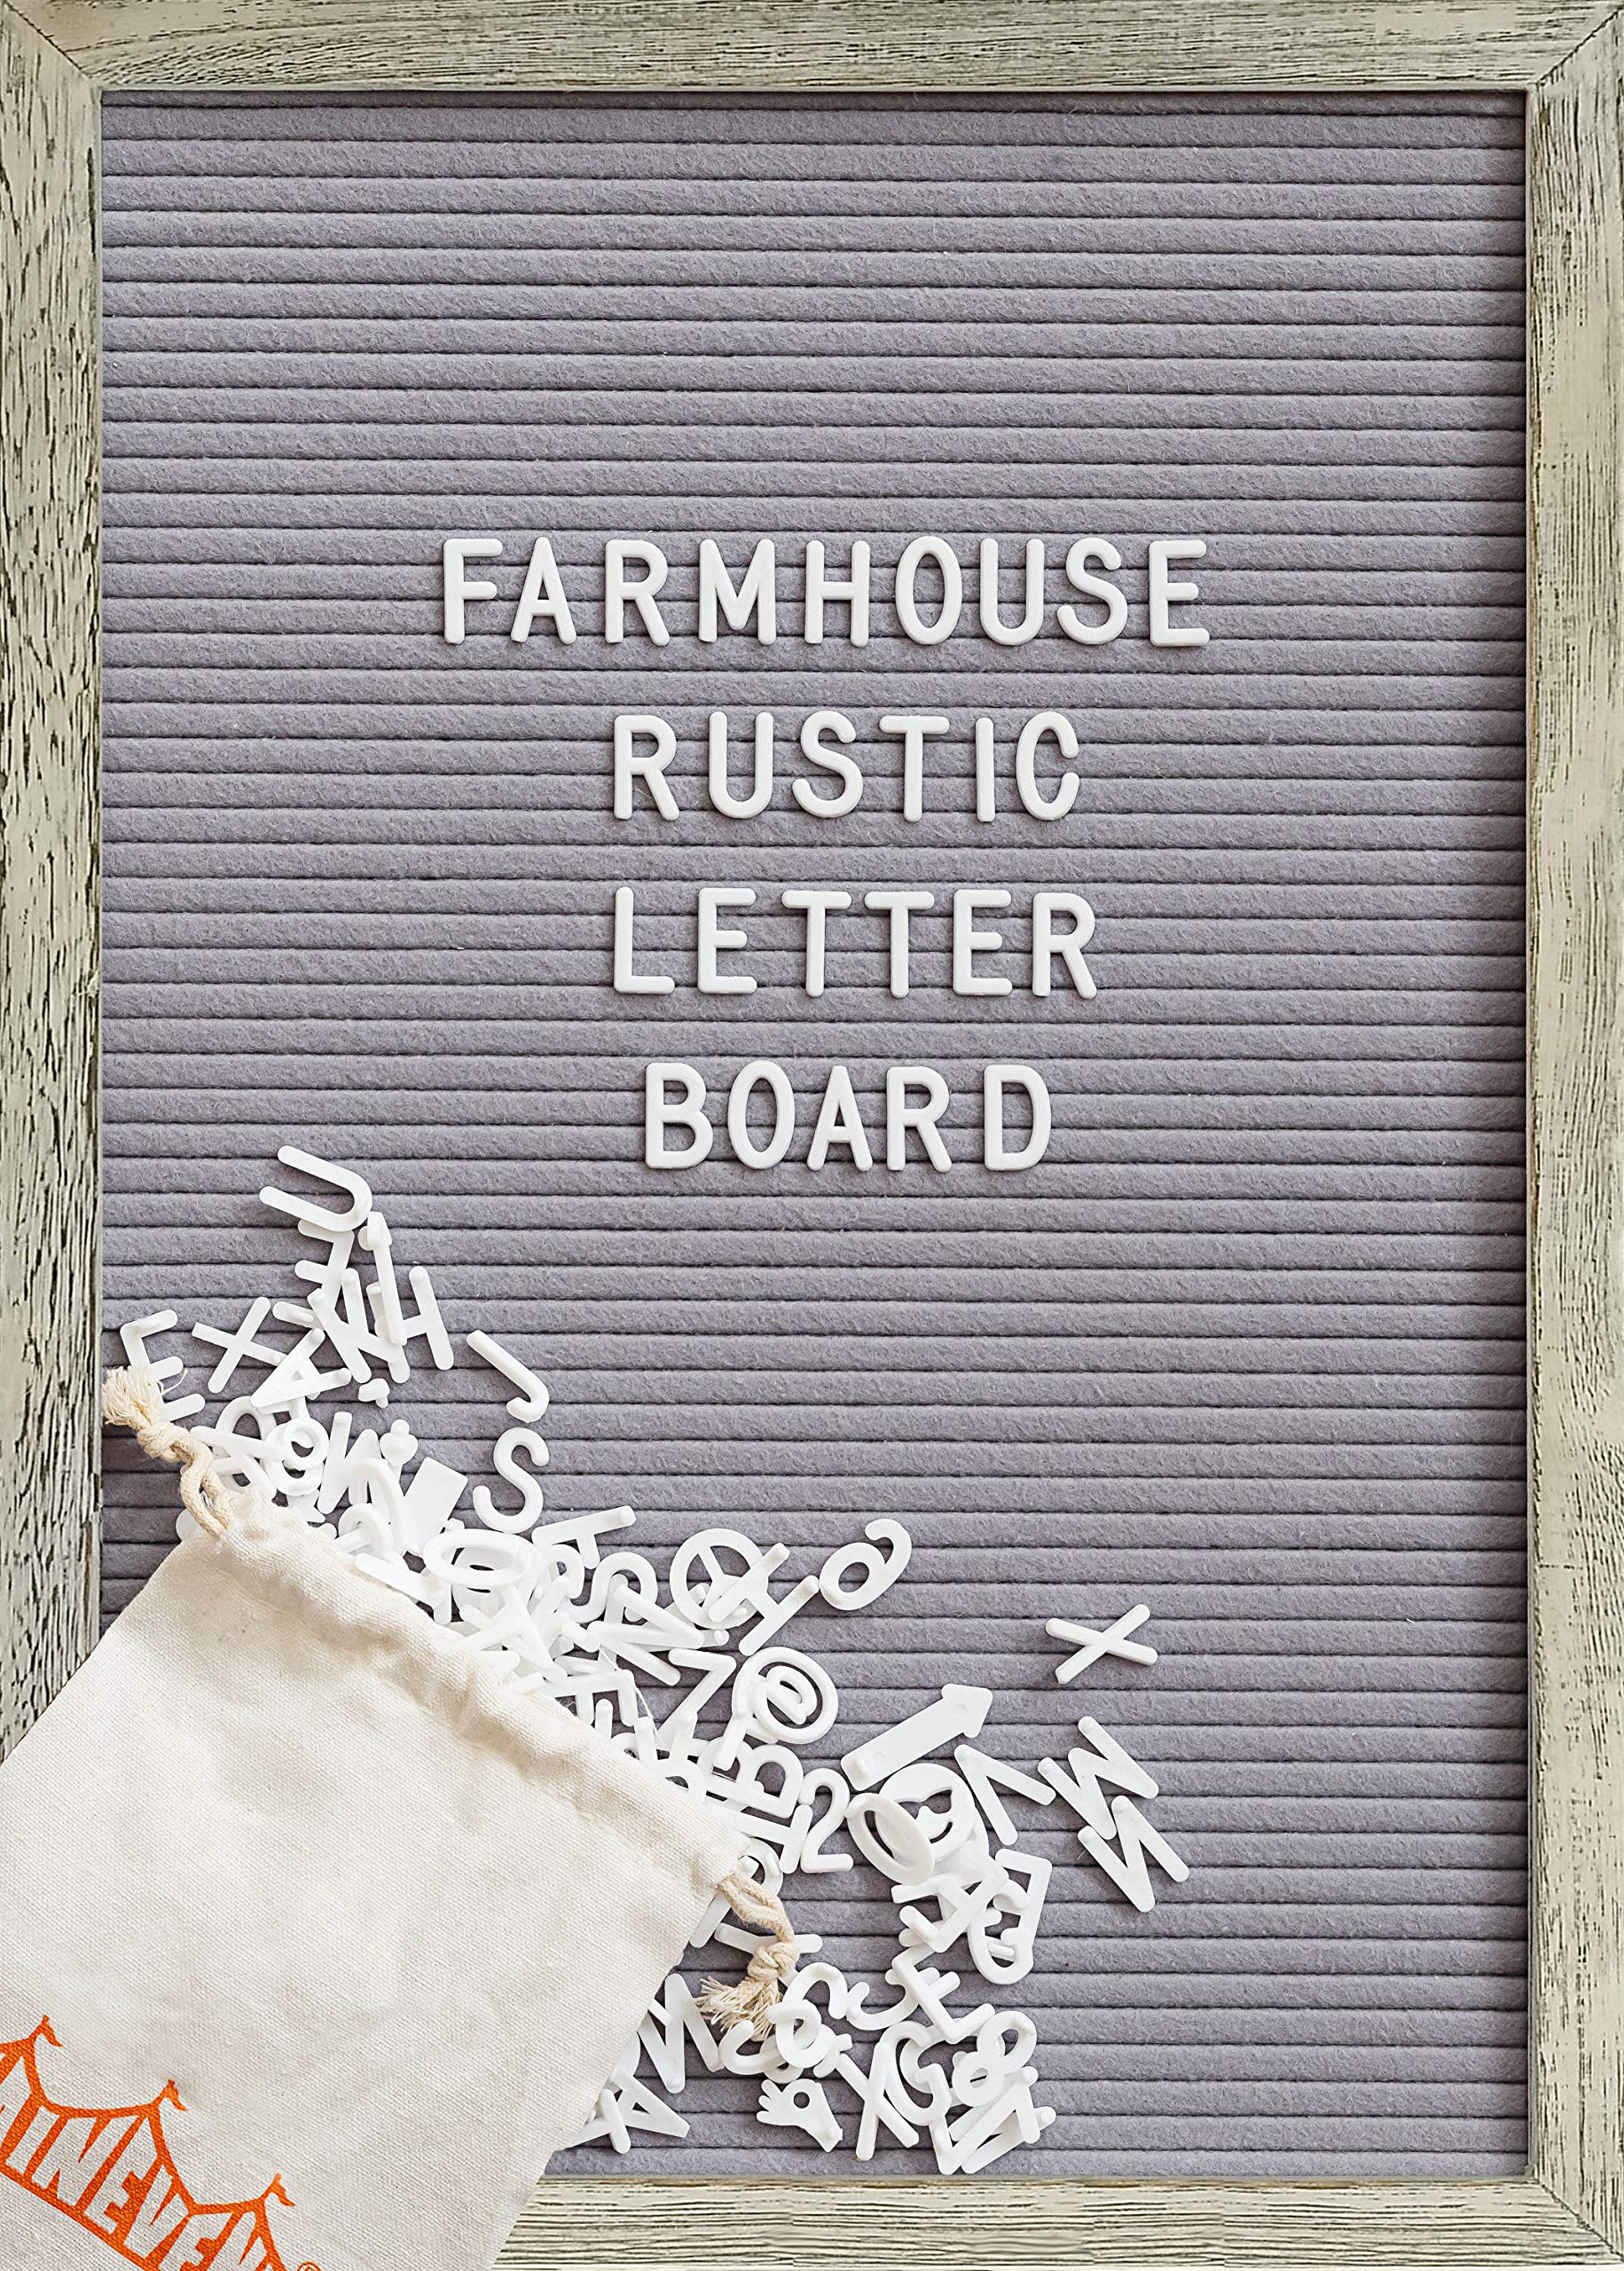 Felt Letter Board with 12x17 Inch Rustic Wood Frame, Script Words, Precut Letters, Picture Hangers, Farmhouse Wall Decor, Shabby Chic Vintage Decor, Grey Felt Message Board by MAINEVENT